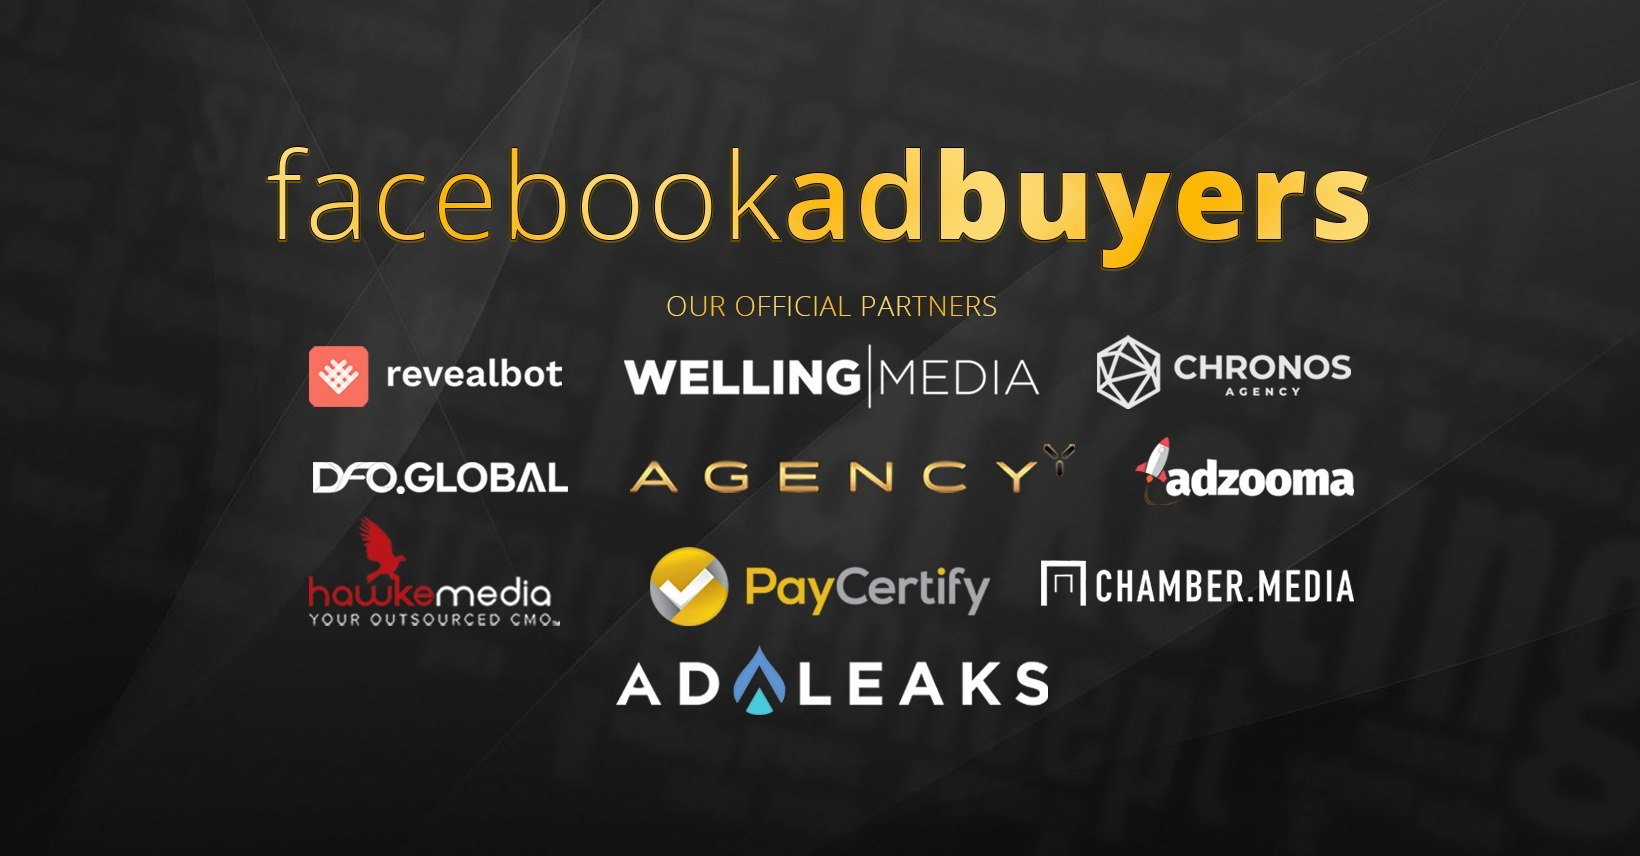 Facebook Ad Buyers Facebook Group